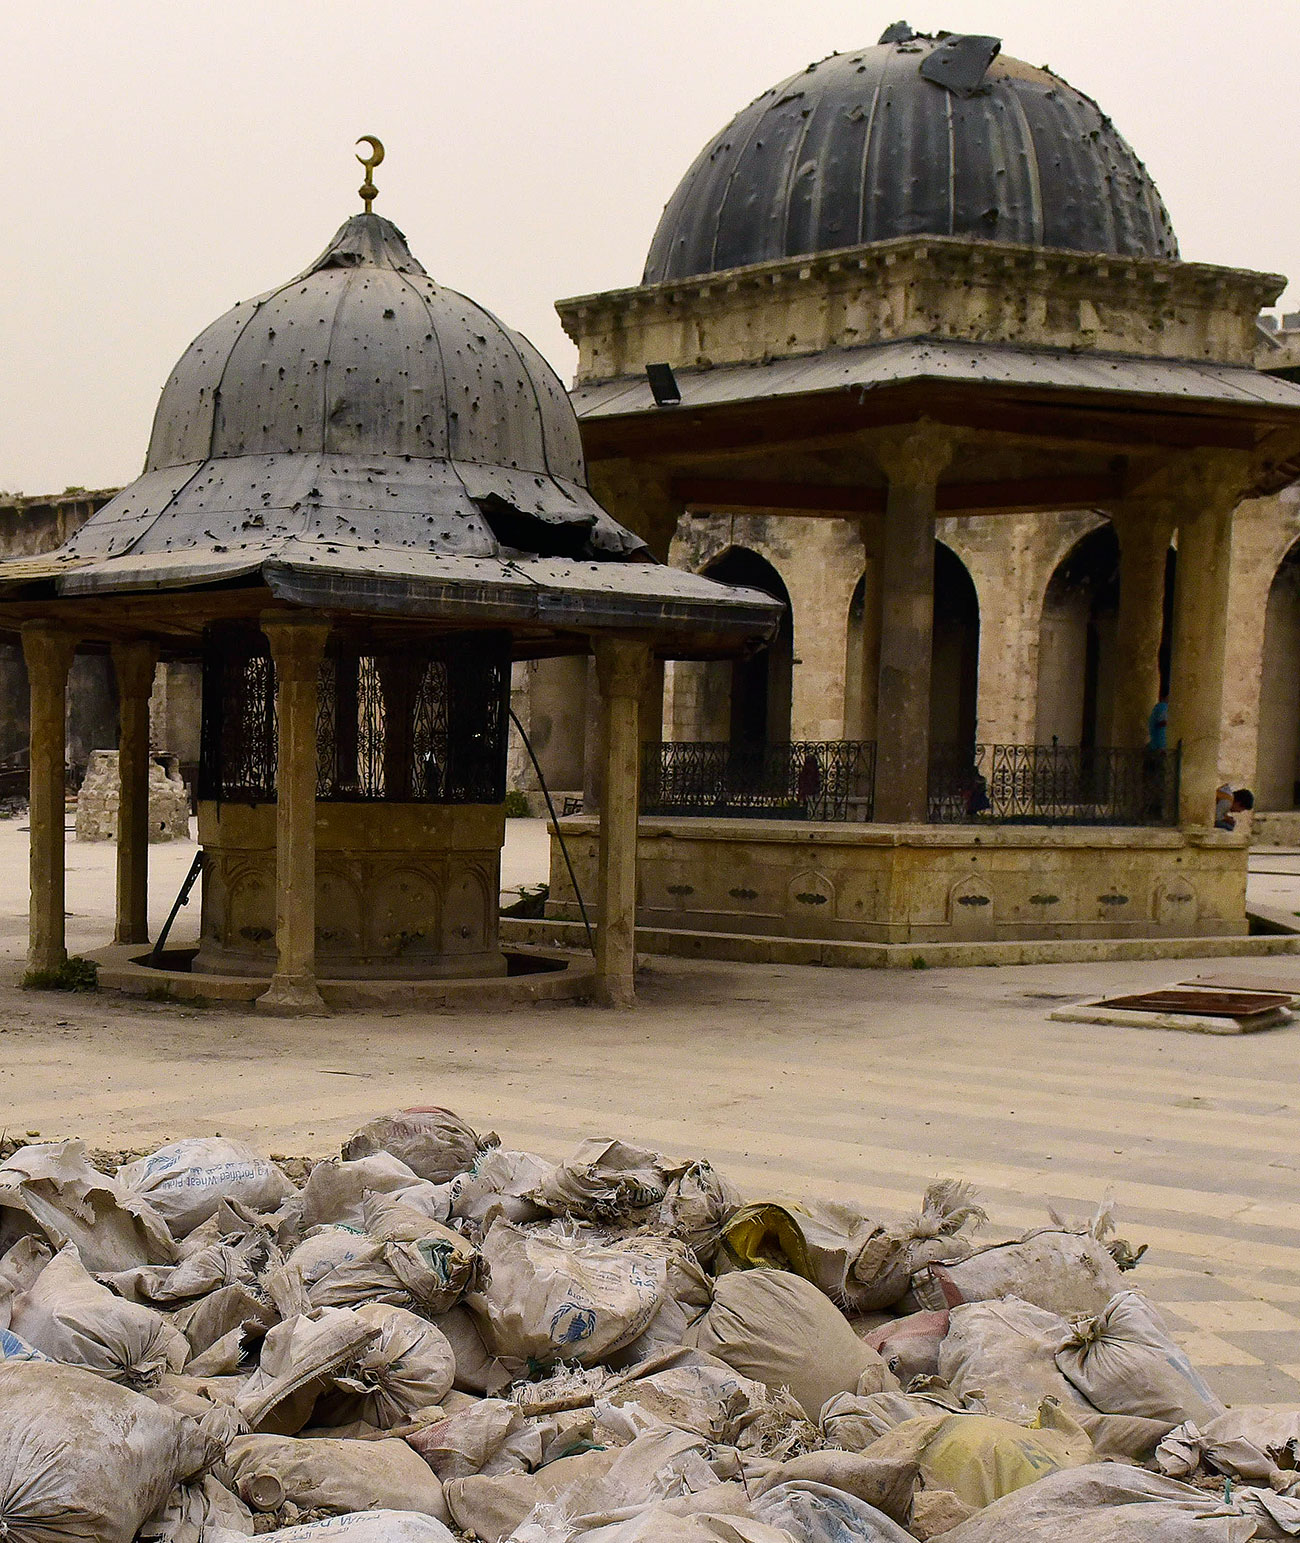 Sandbags fill the foreground of this scene of war ruins of a historic mosque